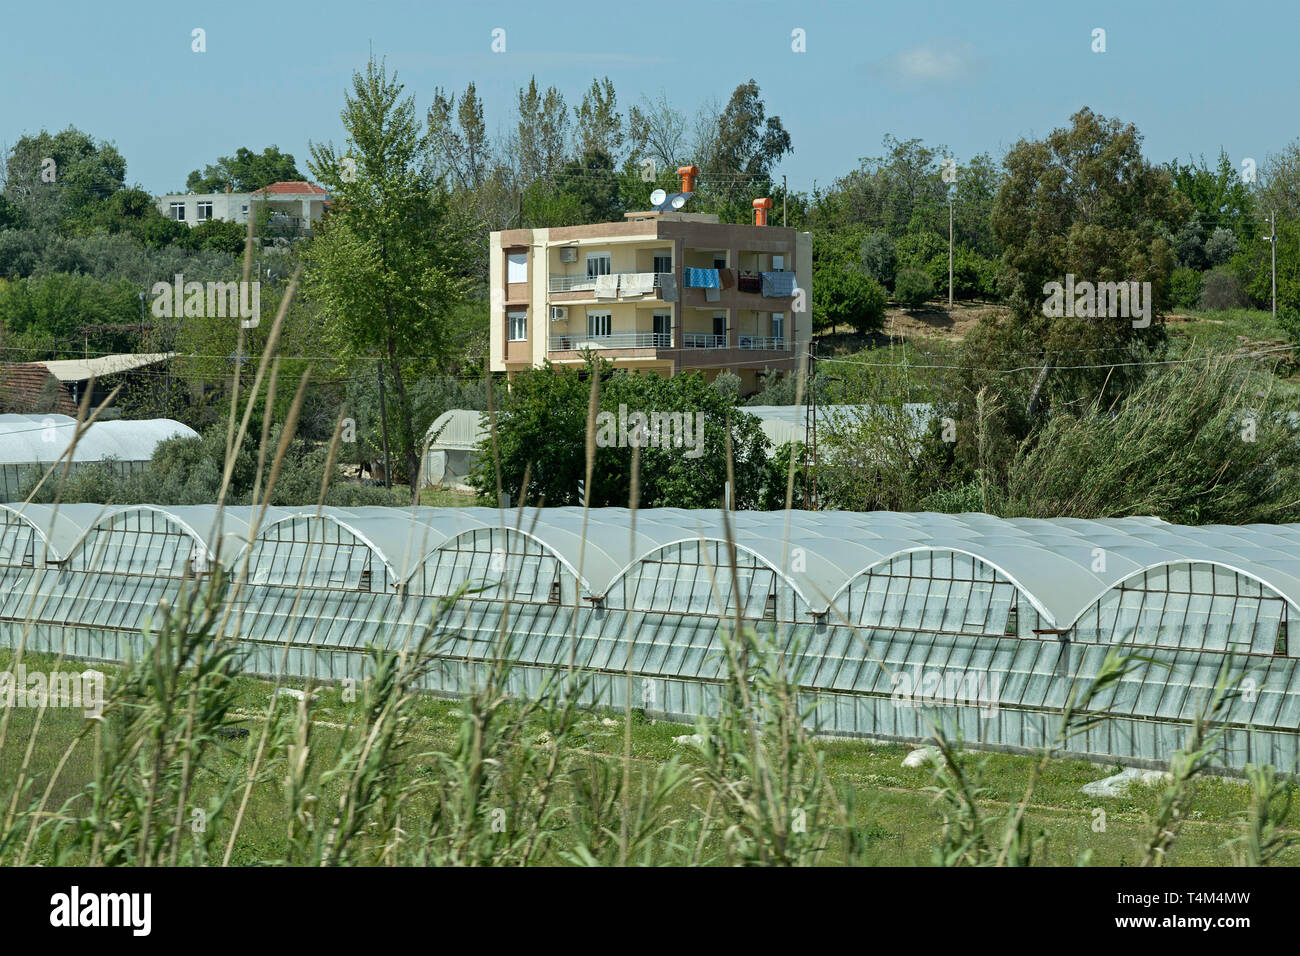 greenhouses, Province Antalya, Turkey - Stock Image